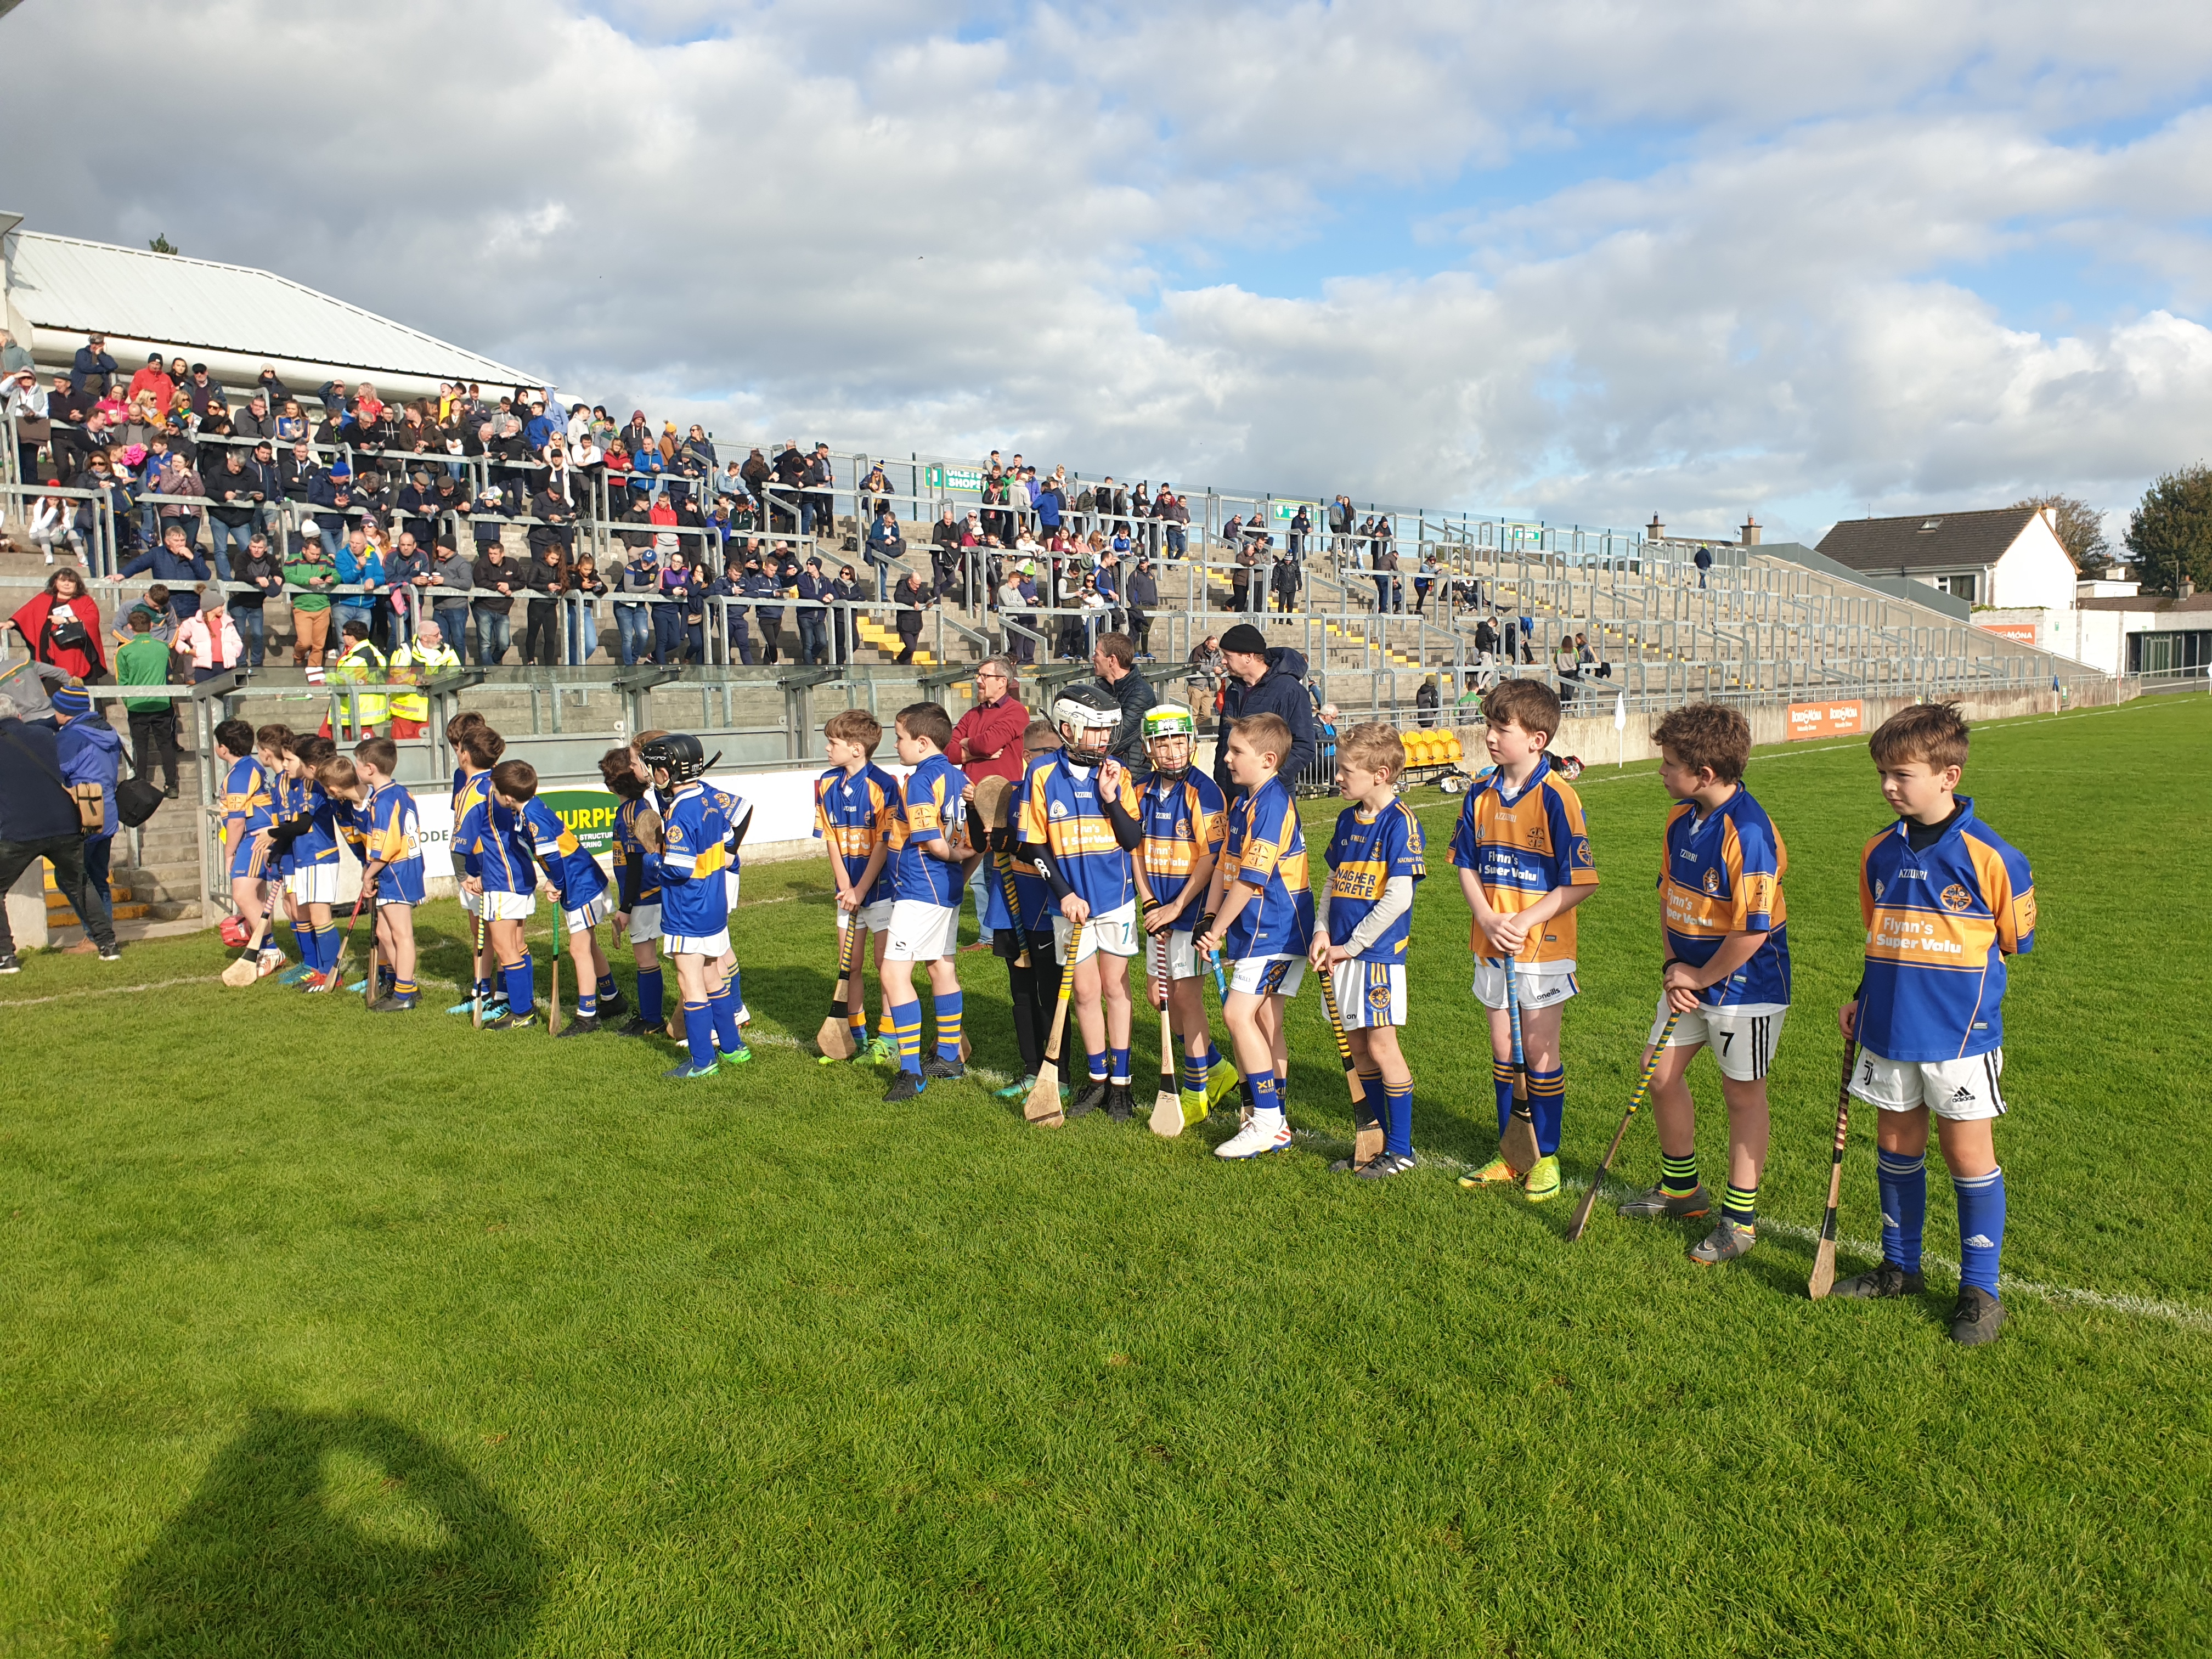 St Rynagh's crowned Senior Hurling Champions